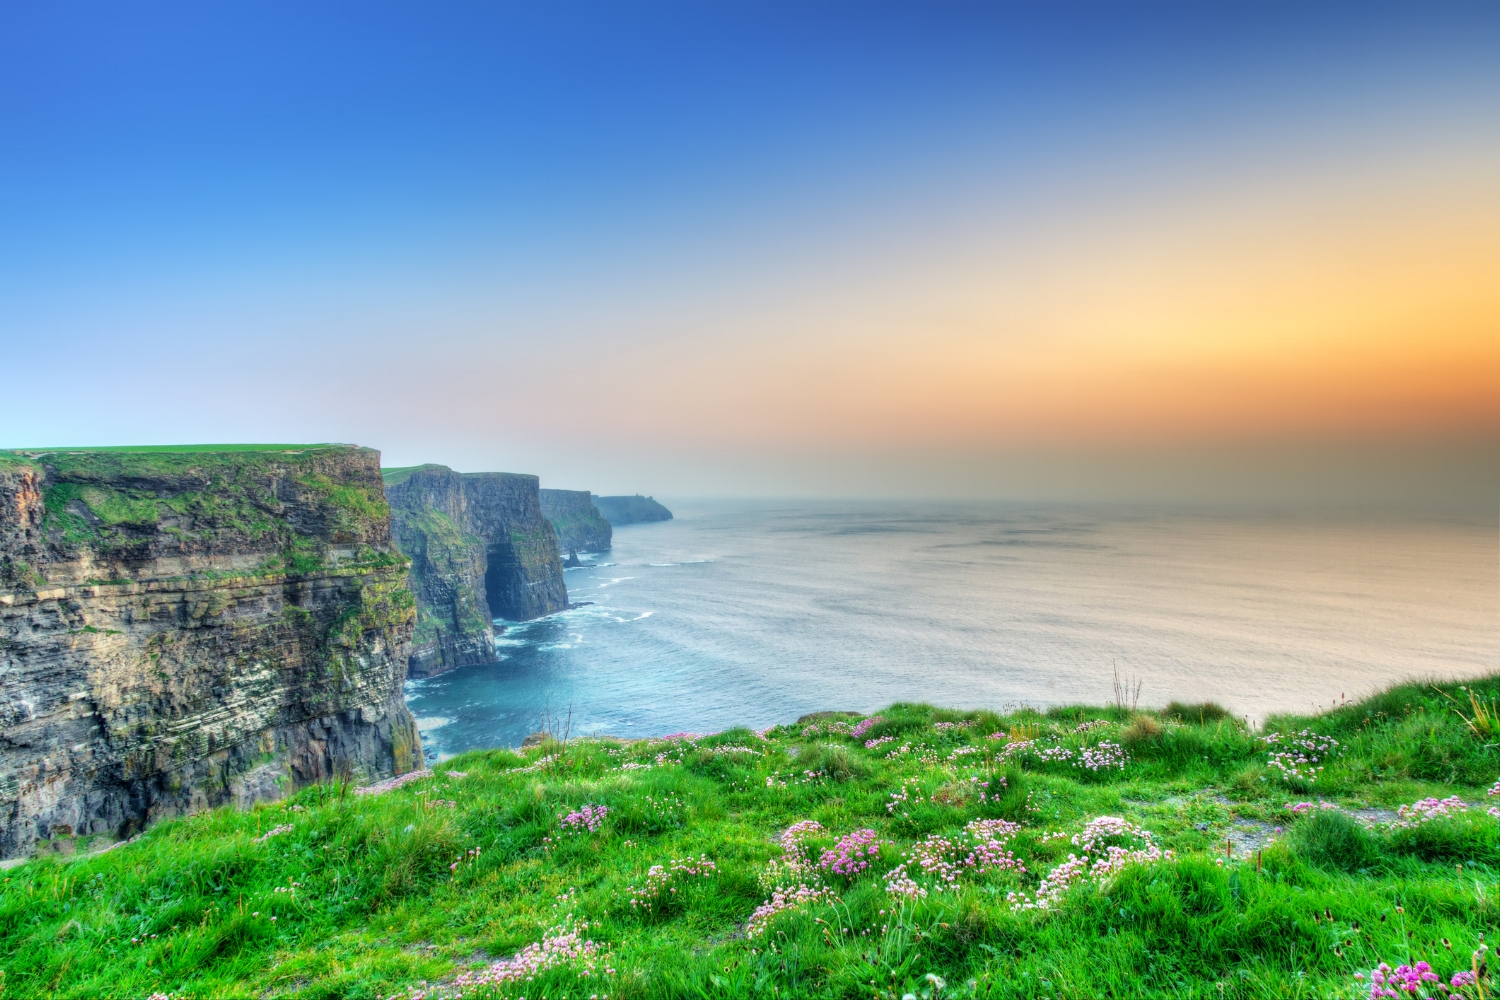 The Cliffs of Moher & The Burren Day Tour - Encounter dramatic cliff coast and the quaint fishing village of Kinvara. Visit Dungaire Castle, Ballyvaughan and the beaches of Fanore. Enjoy dining, shopping & pubs in Doolin and possibly take a ferry to the Aran Islands. Be awed by the Cliffs of Moher, the Burren and Ailiwee Caves. Don't miss the Lady Gregory Museum &Coole Park, plus WB Yeats home nearby in Thoorballylee, Gort. Return to Galway City.